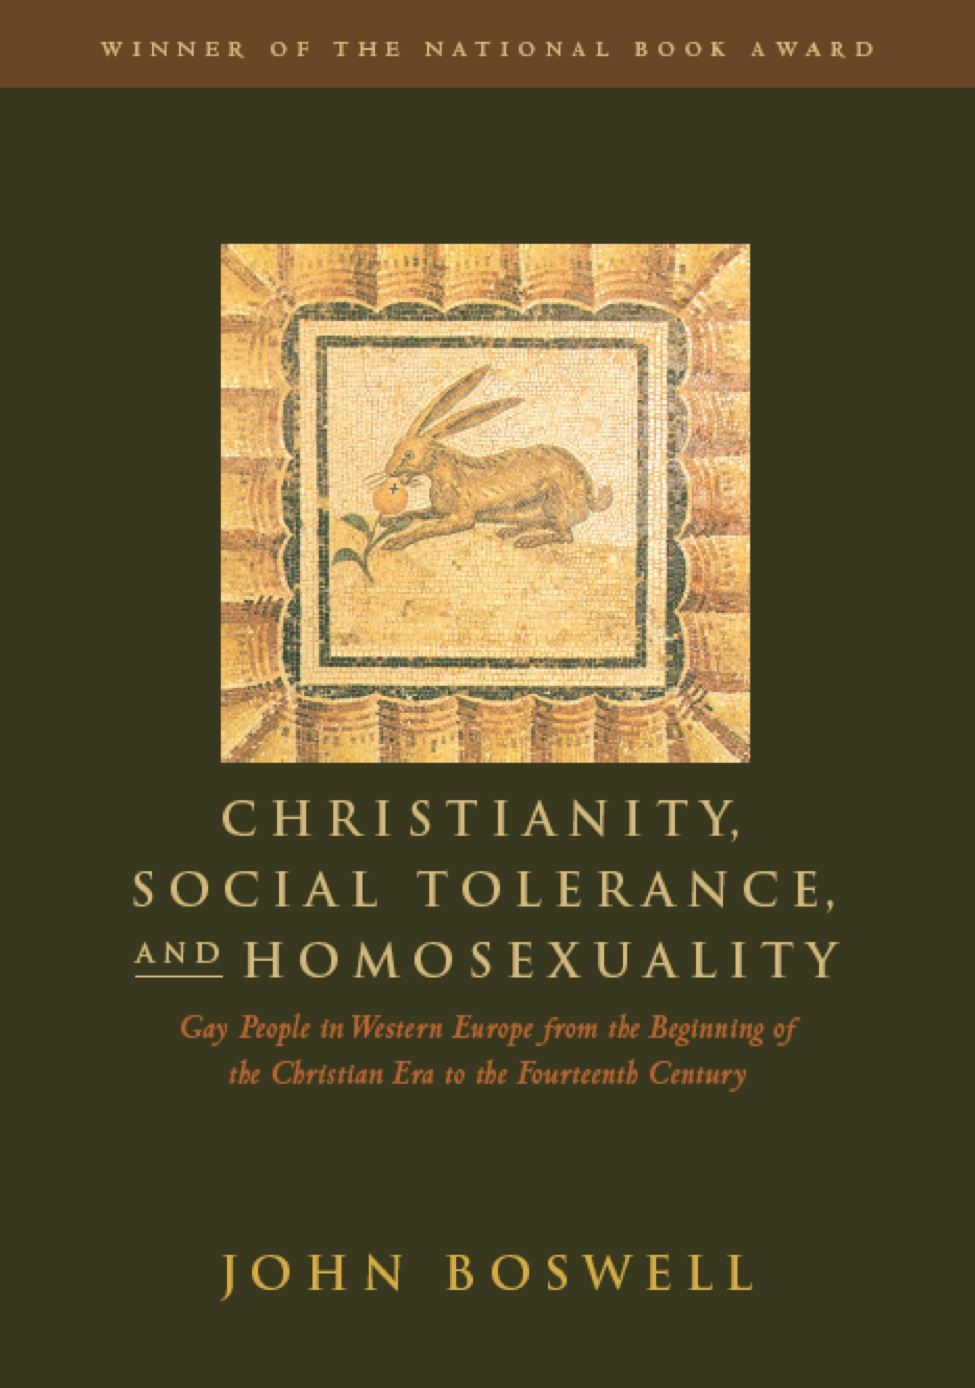 Christianity, Social Tolerance, and Homosexuality By: John Boswell